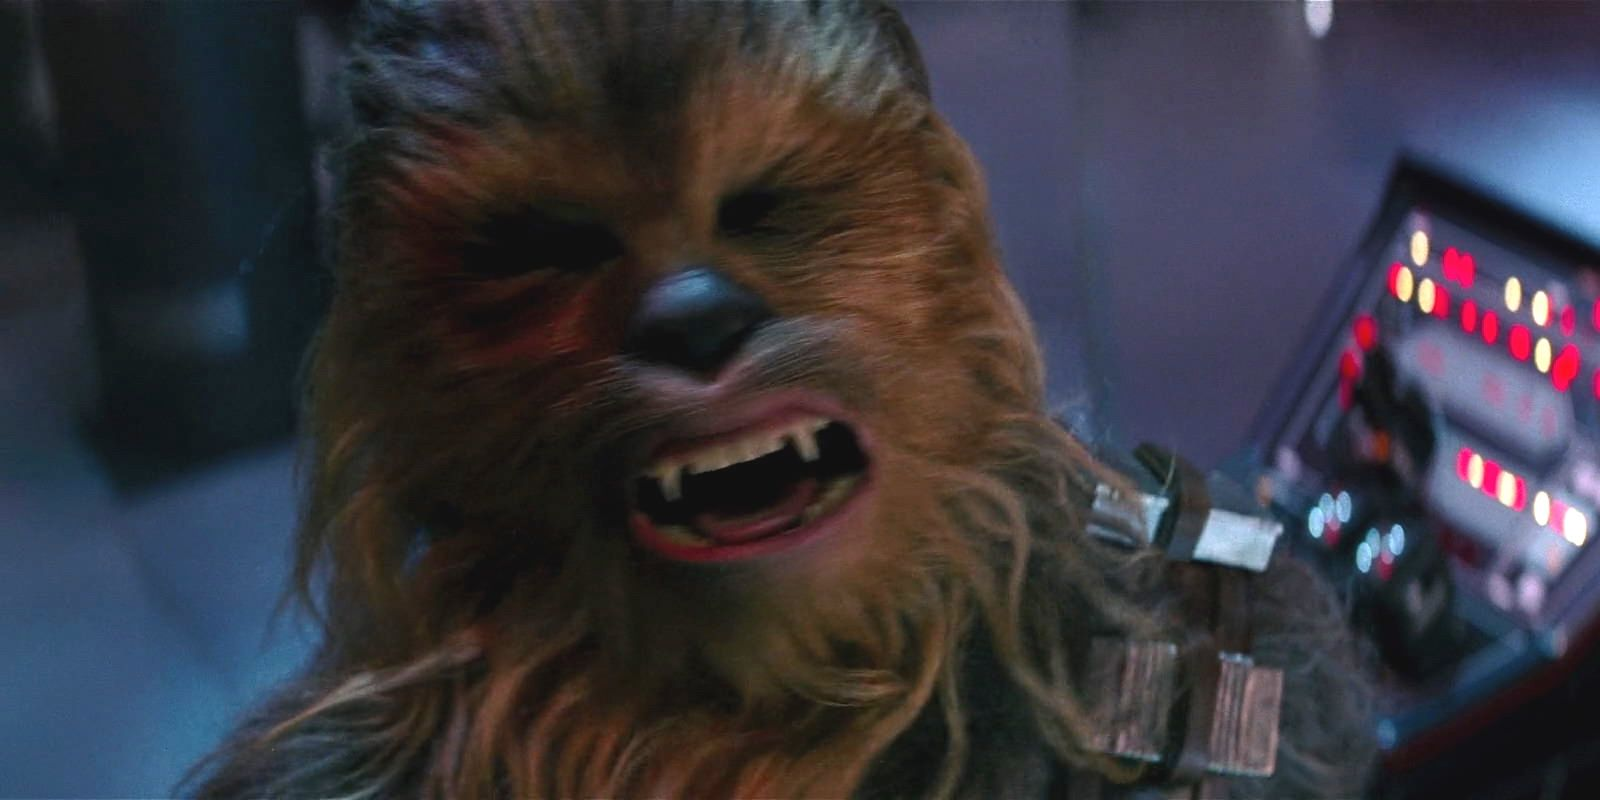 [Image: Chewbacca-upset-in-Star-Wars-The-Force-Awakens.jpg]